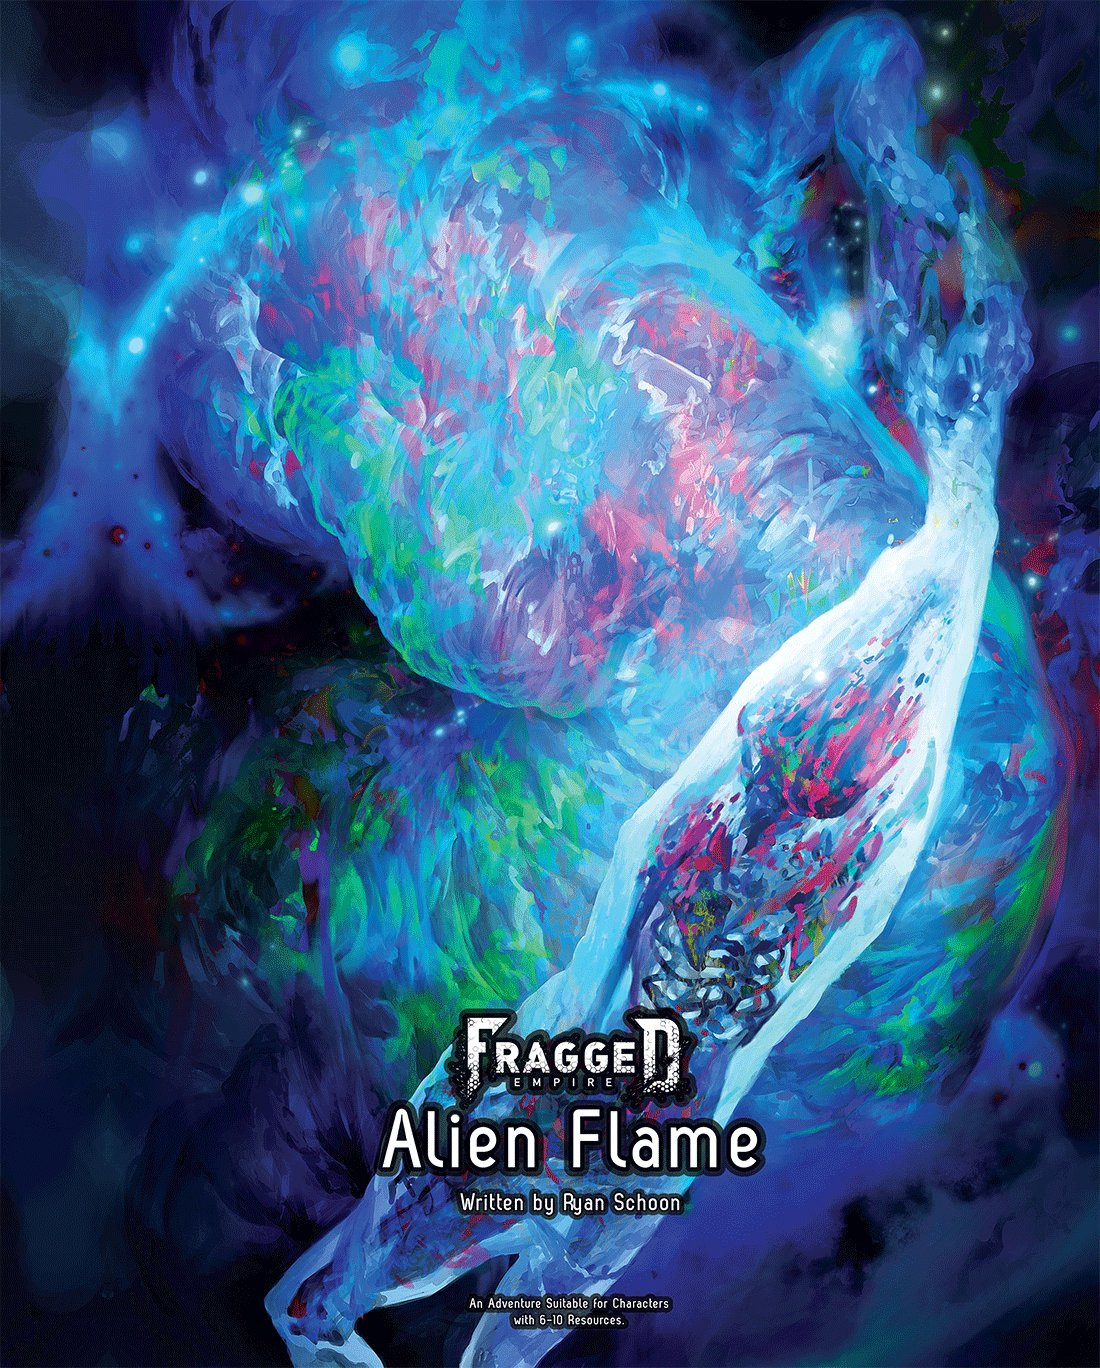 Fragged_Empire_Alien_Flame_Cover